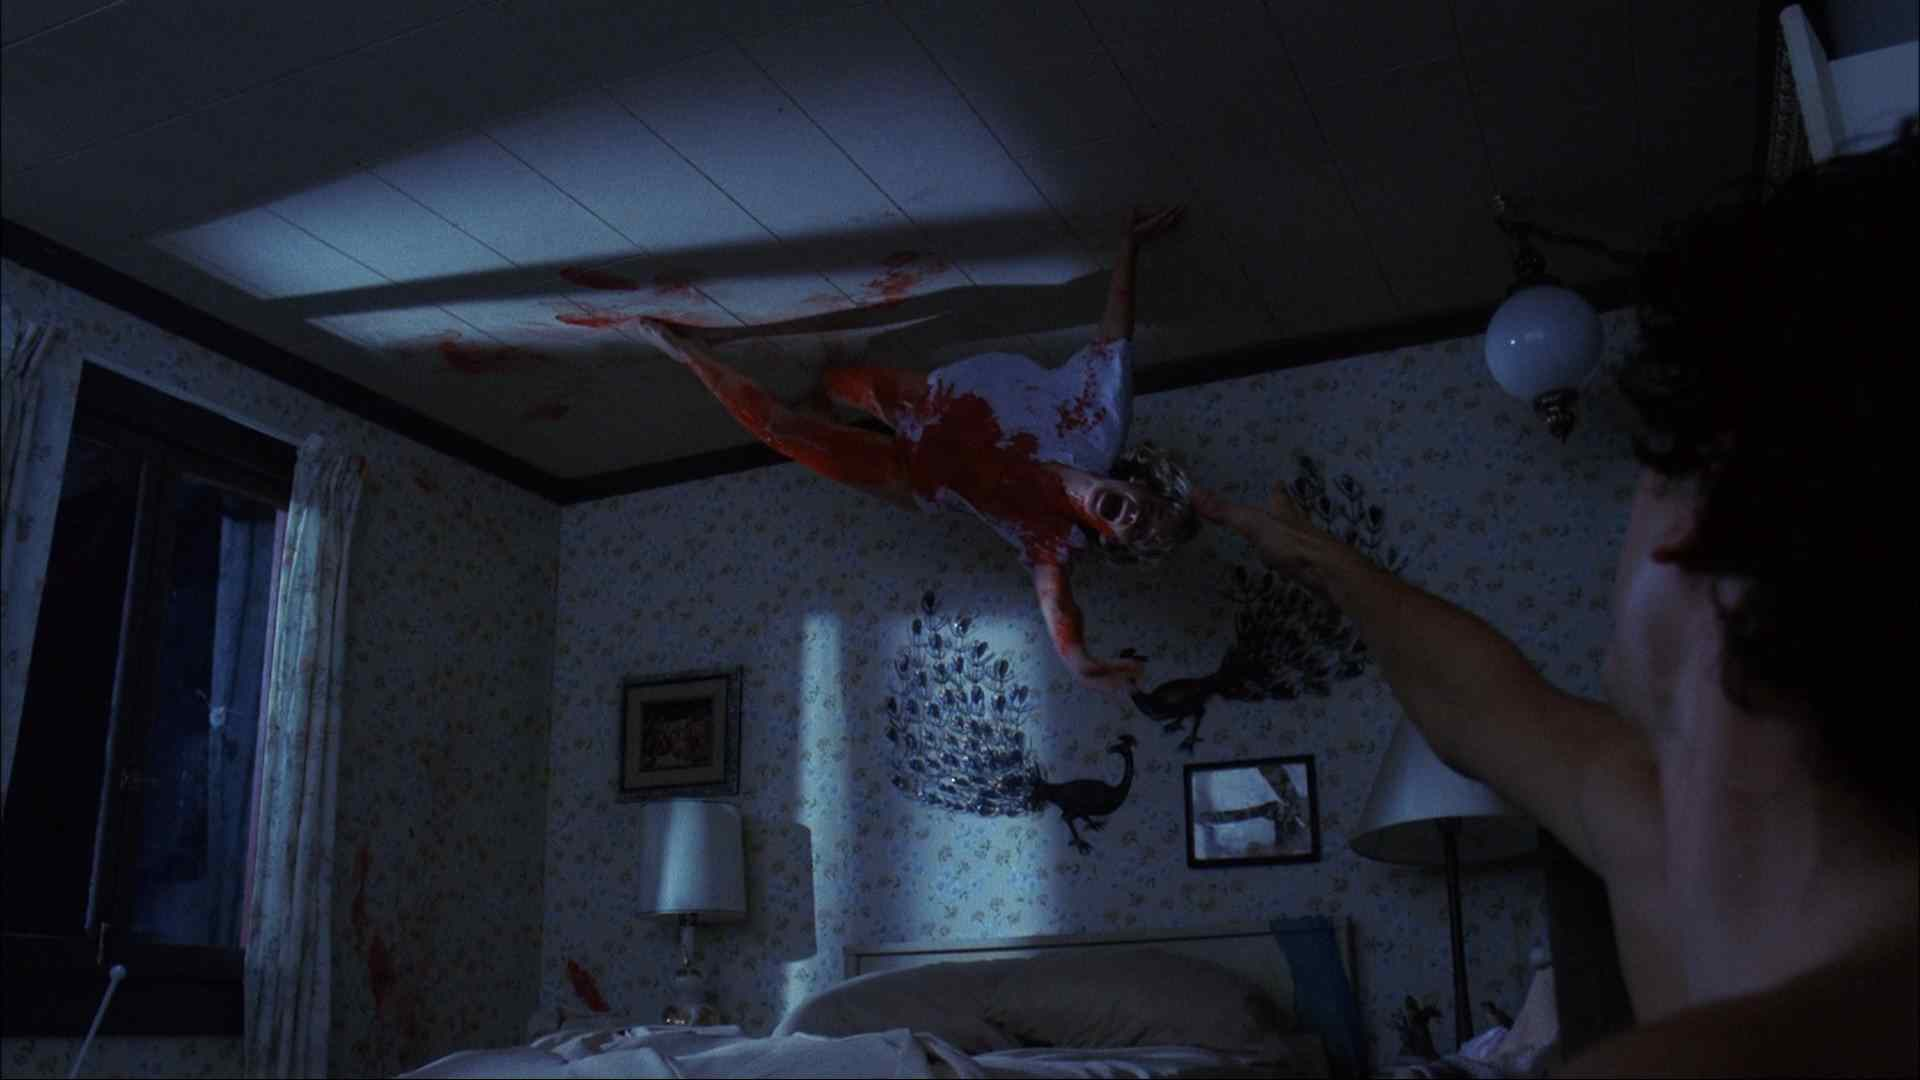 The Wes Craven classic a Nightmare on Elm Street.